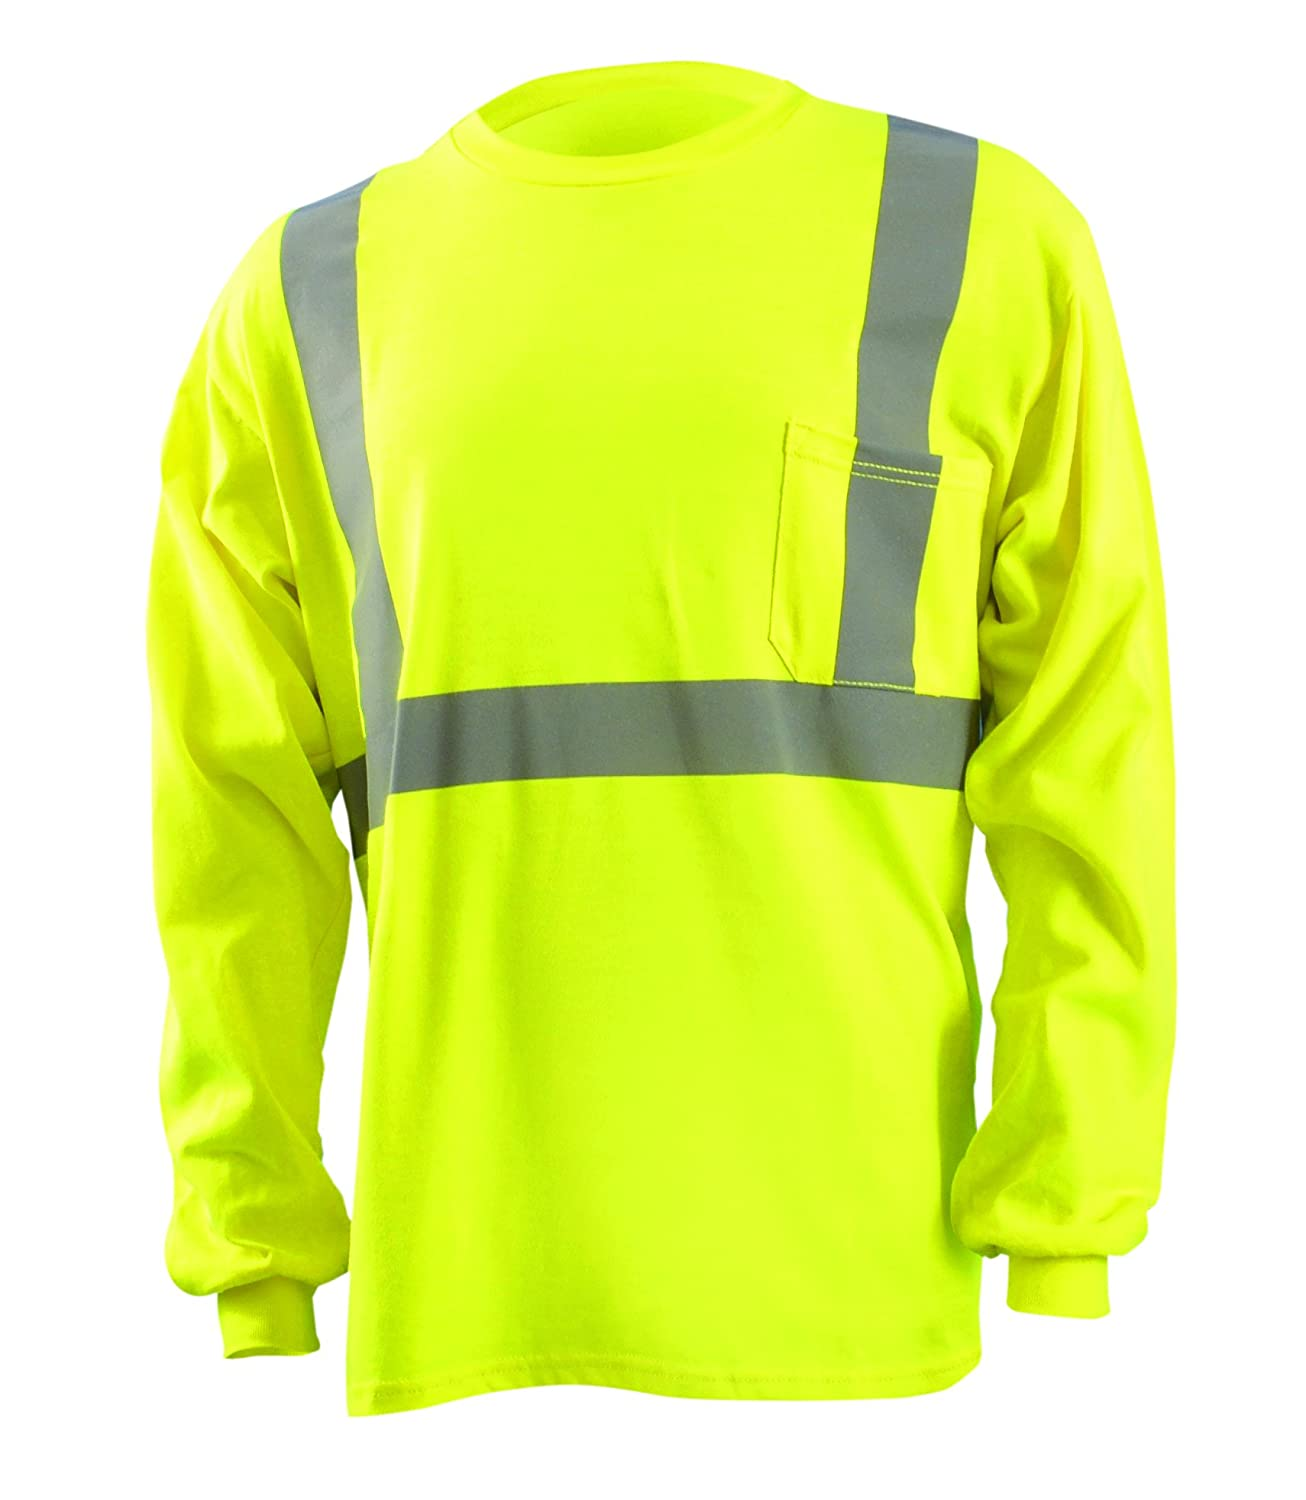 Occunomix LUX-SSBRPFR-Y4X Premium Flame Resistant 5 Point Break-Away Solid Vest, HRC 1, 4X-Large, Yellow by Occunomix B00647XVKY